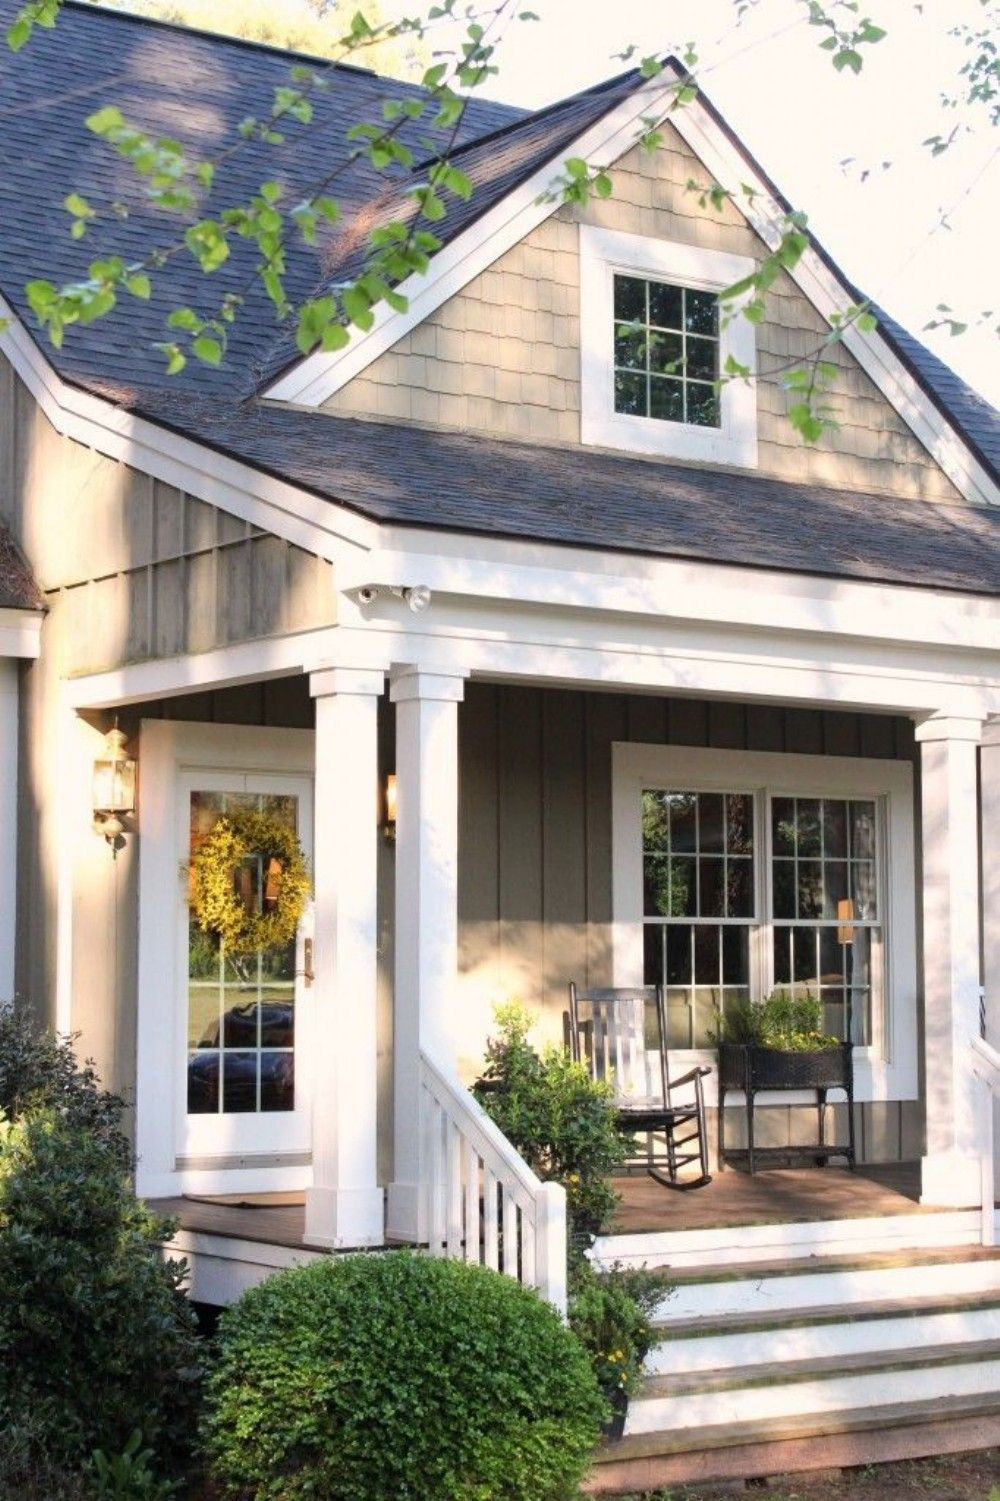 Small Front Porches Designs Front Porch Steps Porch Design: Nice 25 Awesome Small Front Porch Design Ideas Https://homedecort.com/2017/04/25-awesome-small